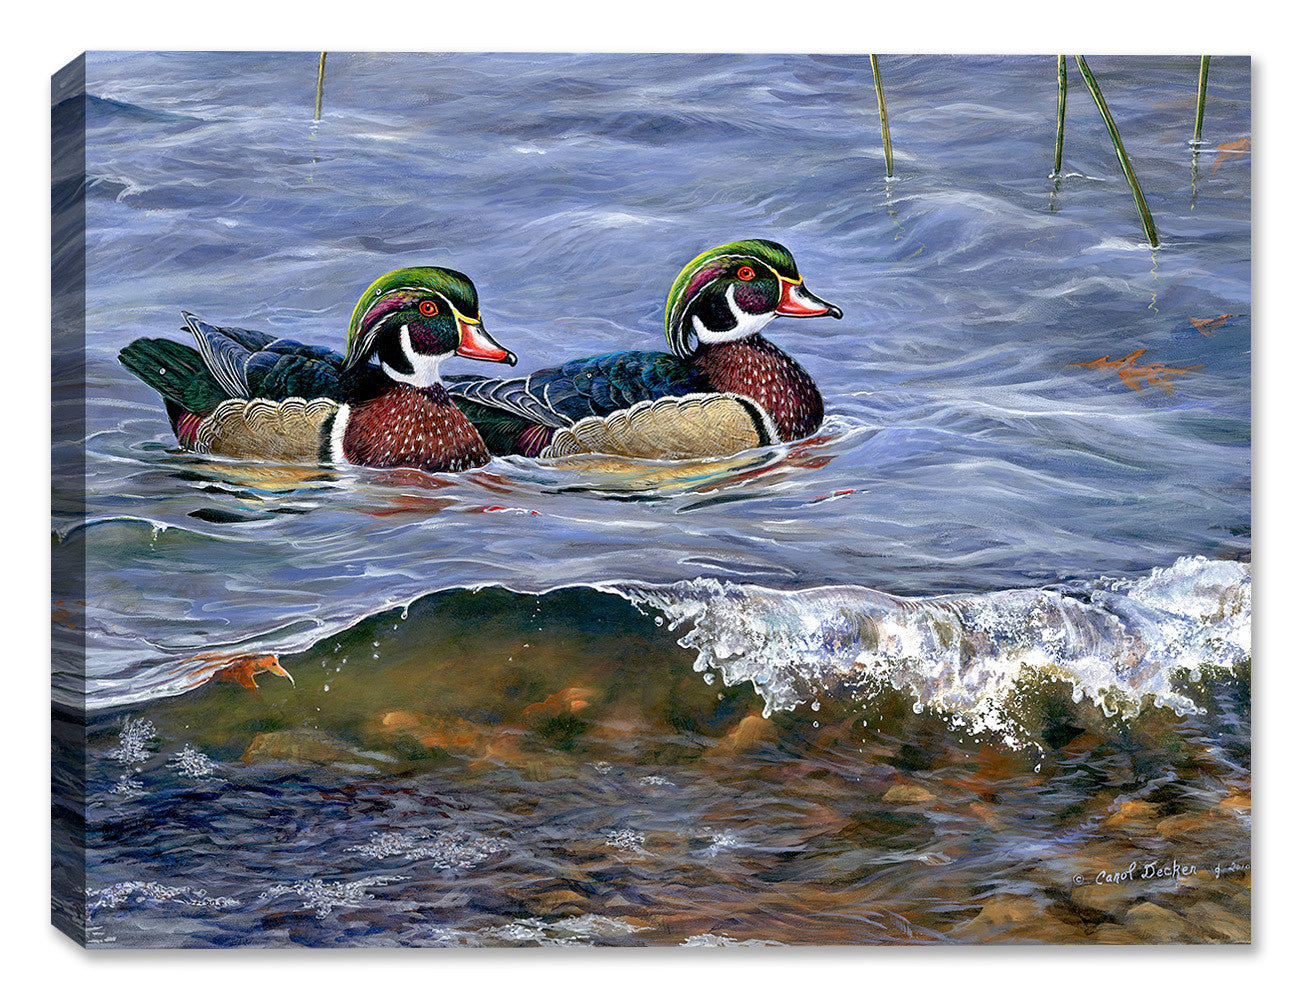 Wood Ducks  by Carol Decker - Canvas Art Plus